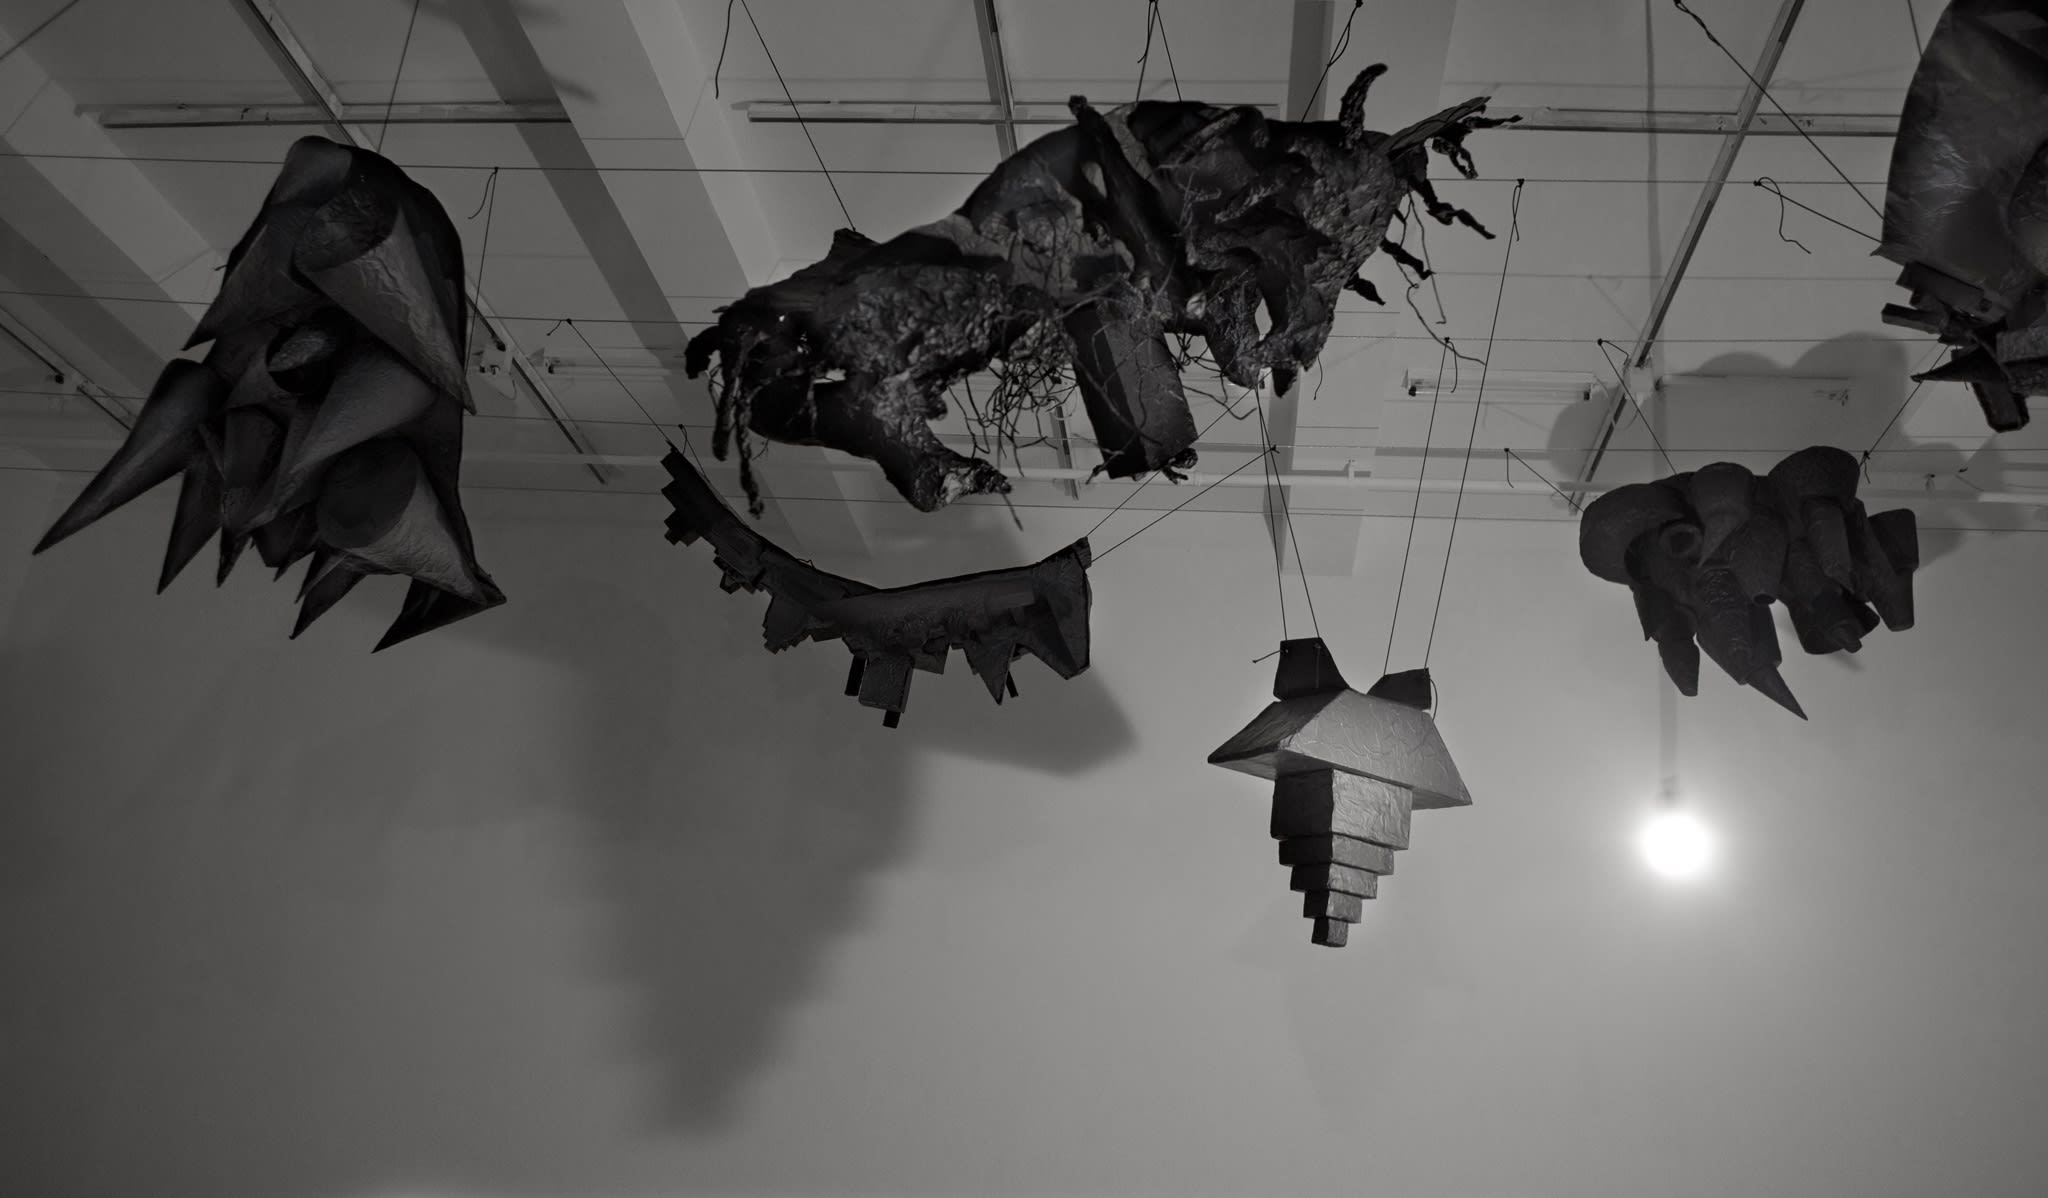 Five sculptures, four made of black fabric, hang suspended like bats in the air.